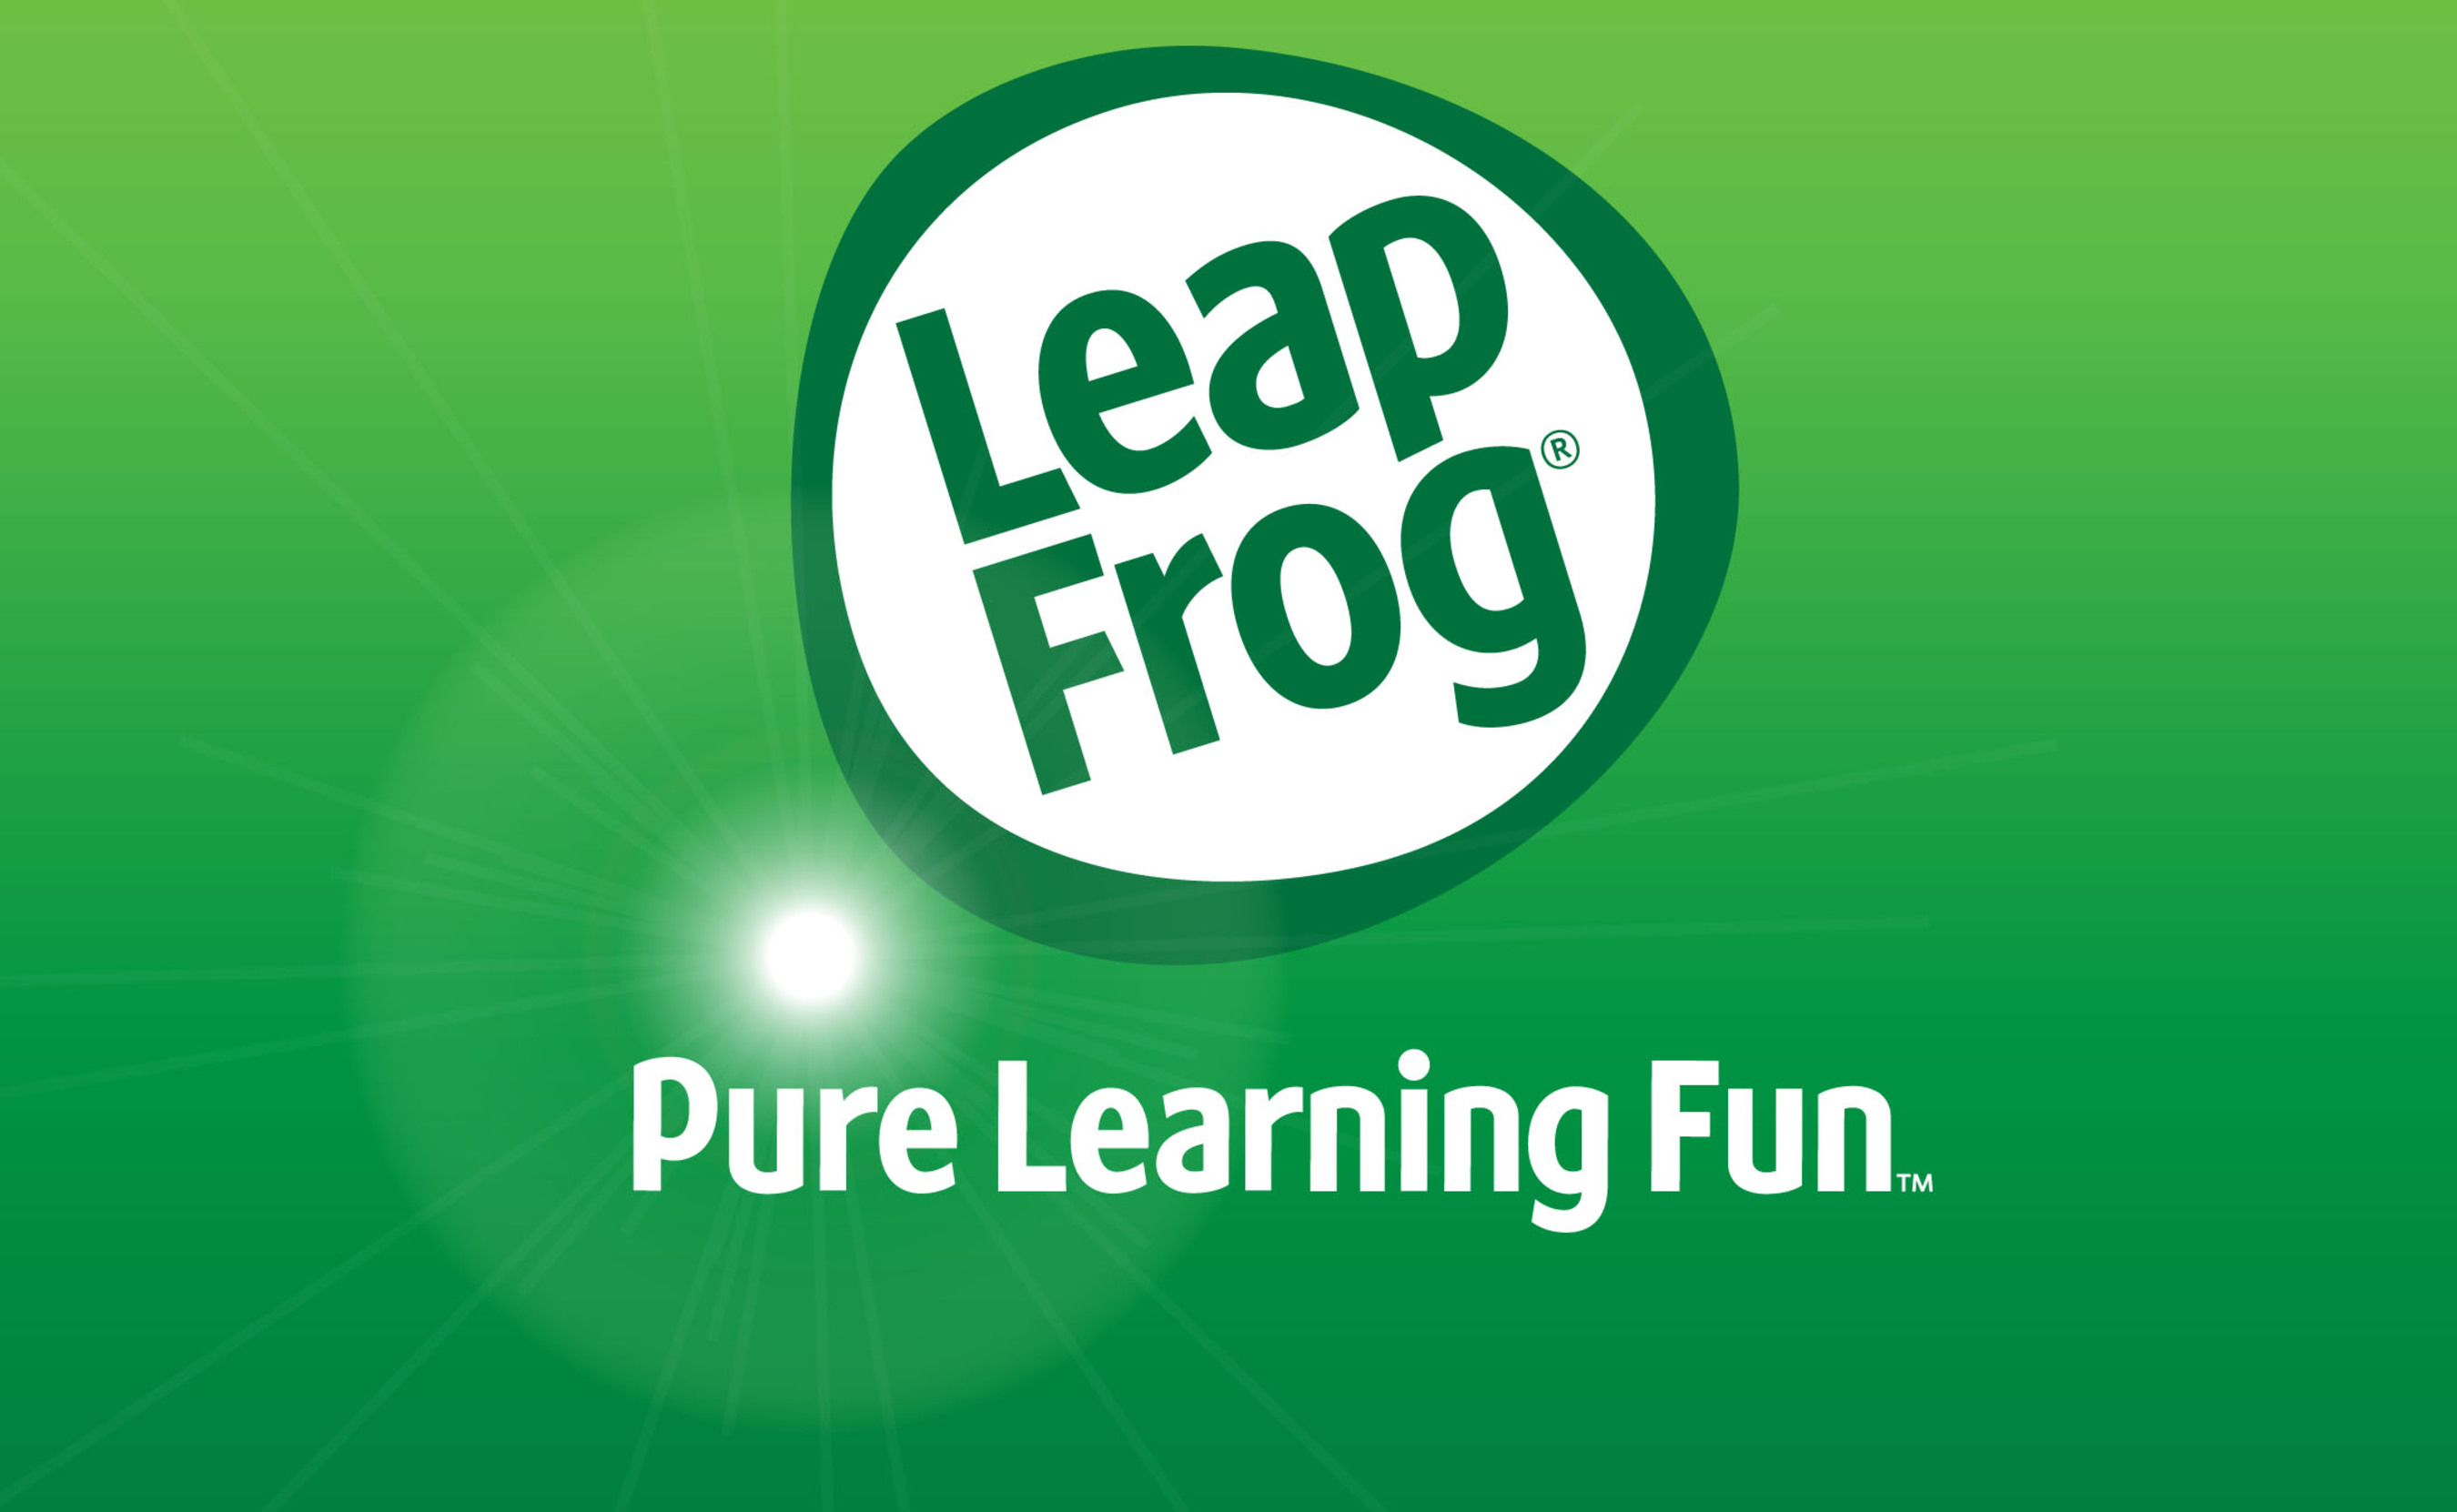 LeapFrog And Olympic Gold-Medal Figure Skater Kristi Yamaguchi Partner To Raise Awareness Of Early Childhood Literacy During National Reading Month